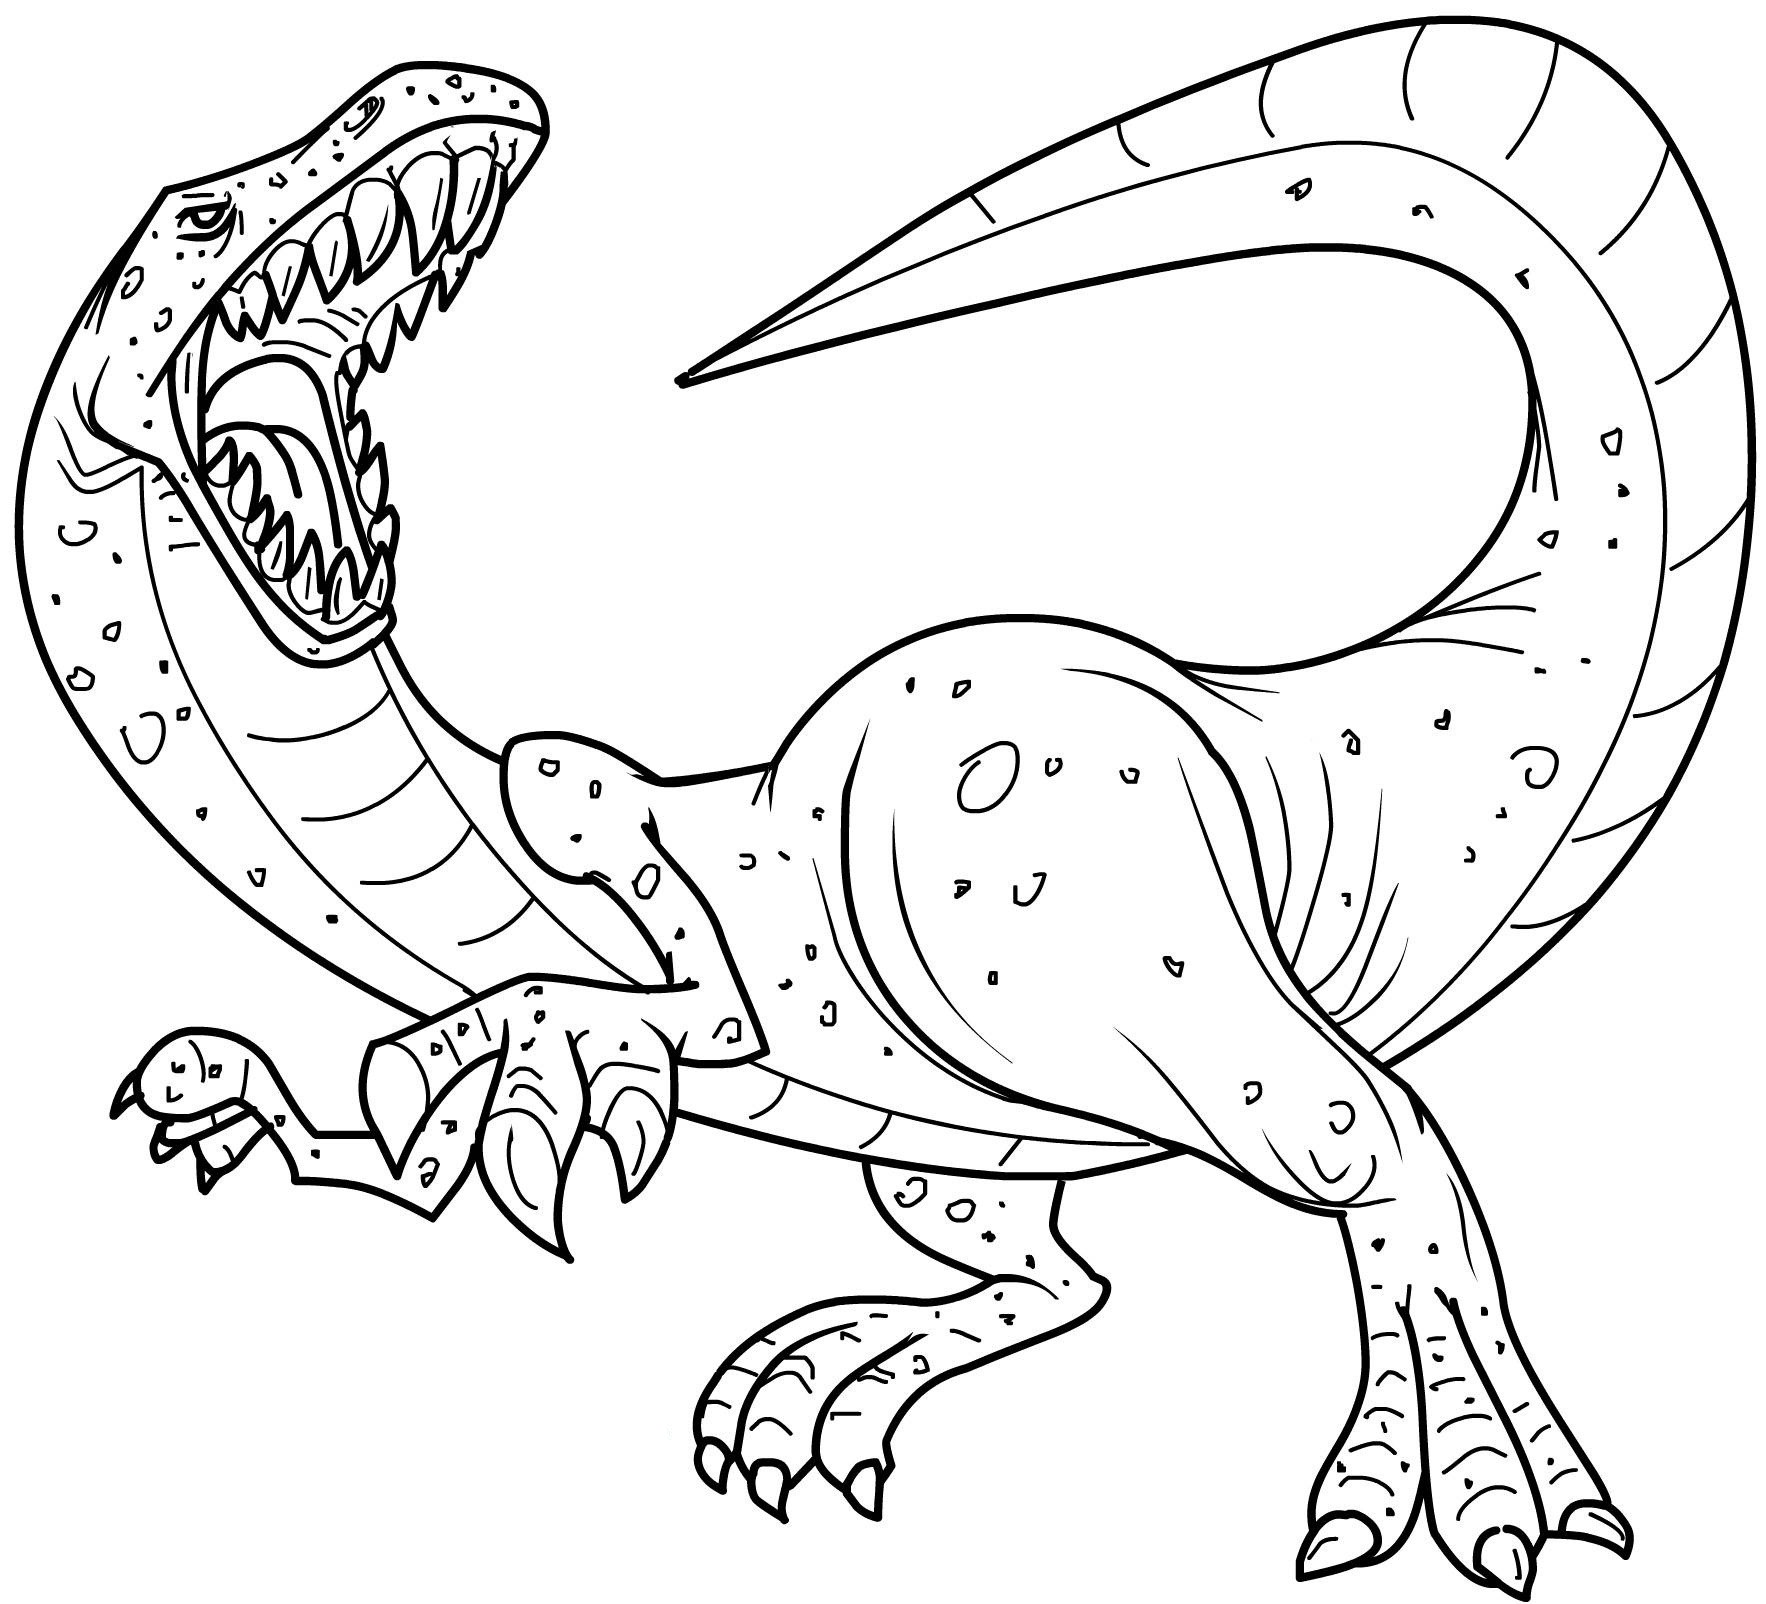 coloring dinosaurs baby dinosaur coloring pages for preschoolers activity coloring dinosaurs